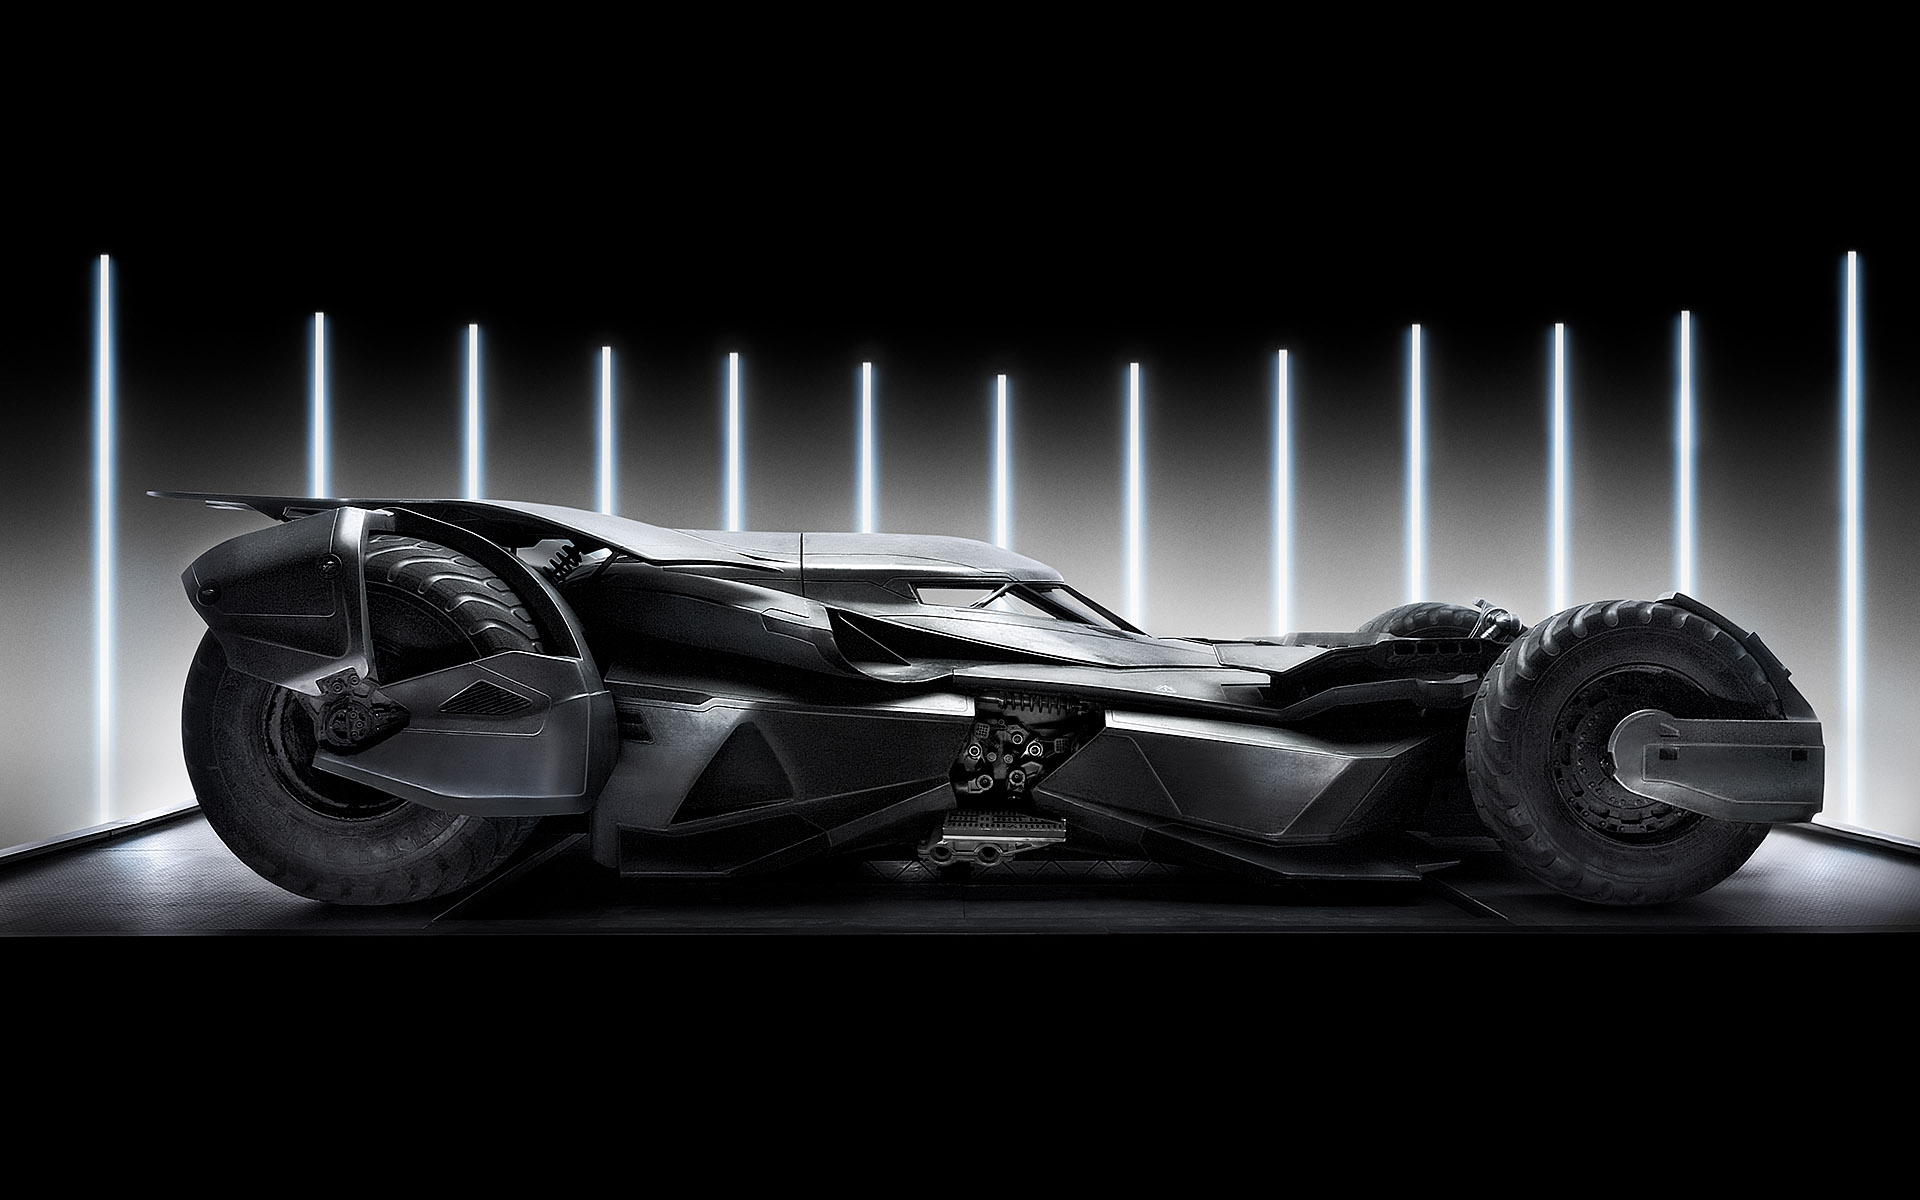 Batman v Superman: Dawn of Justice Batmobile ©S Derviller